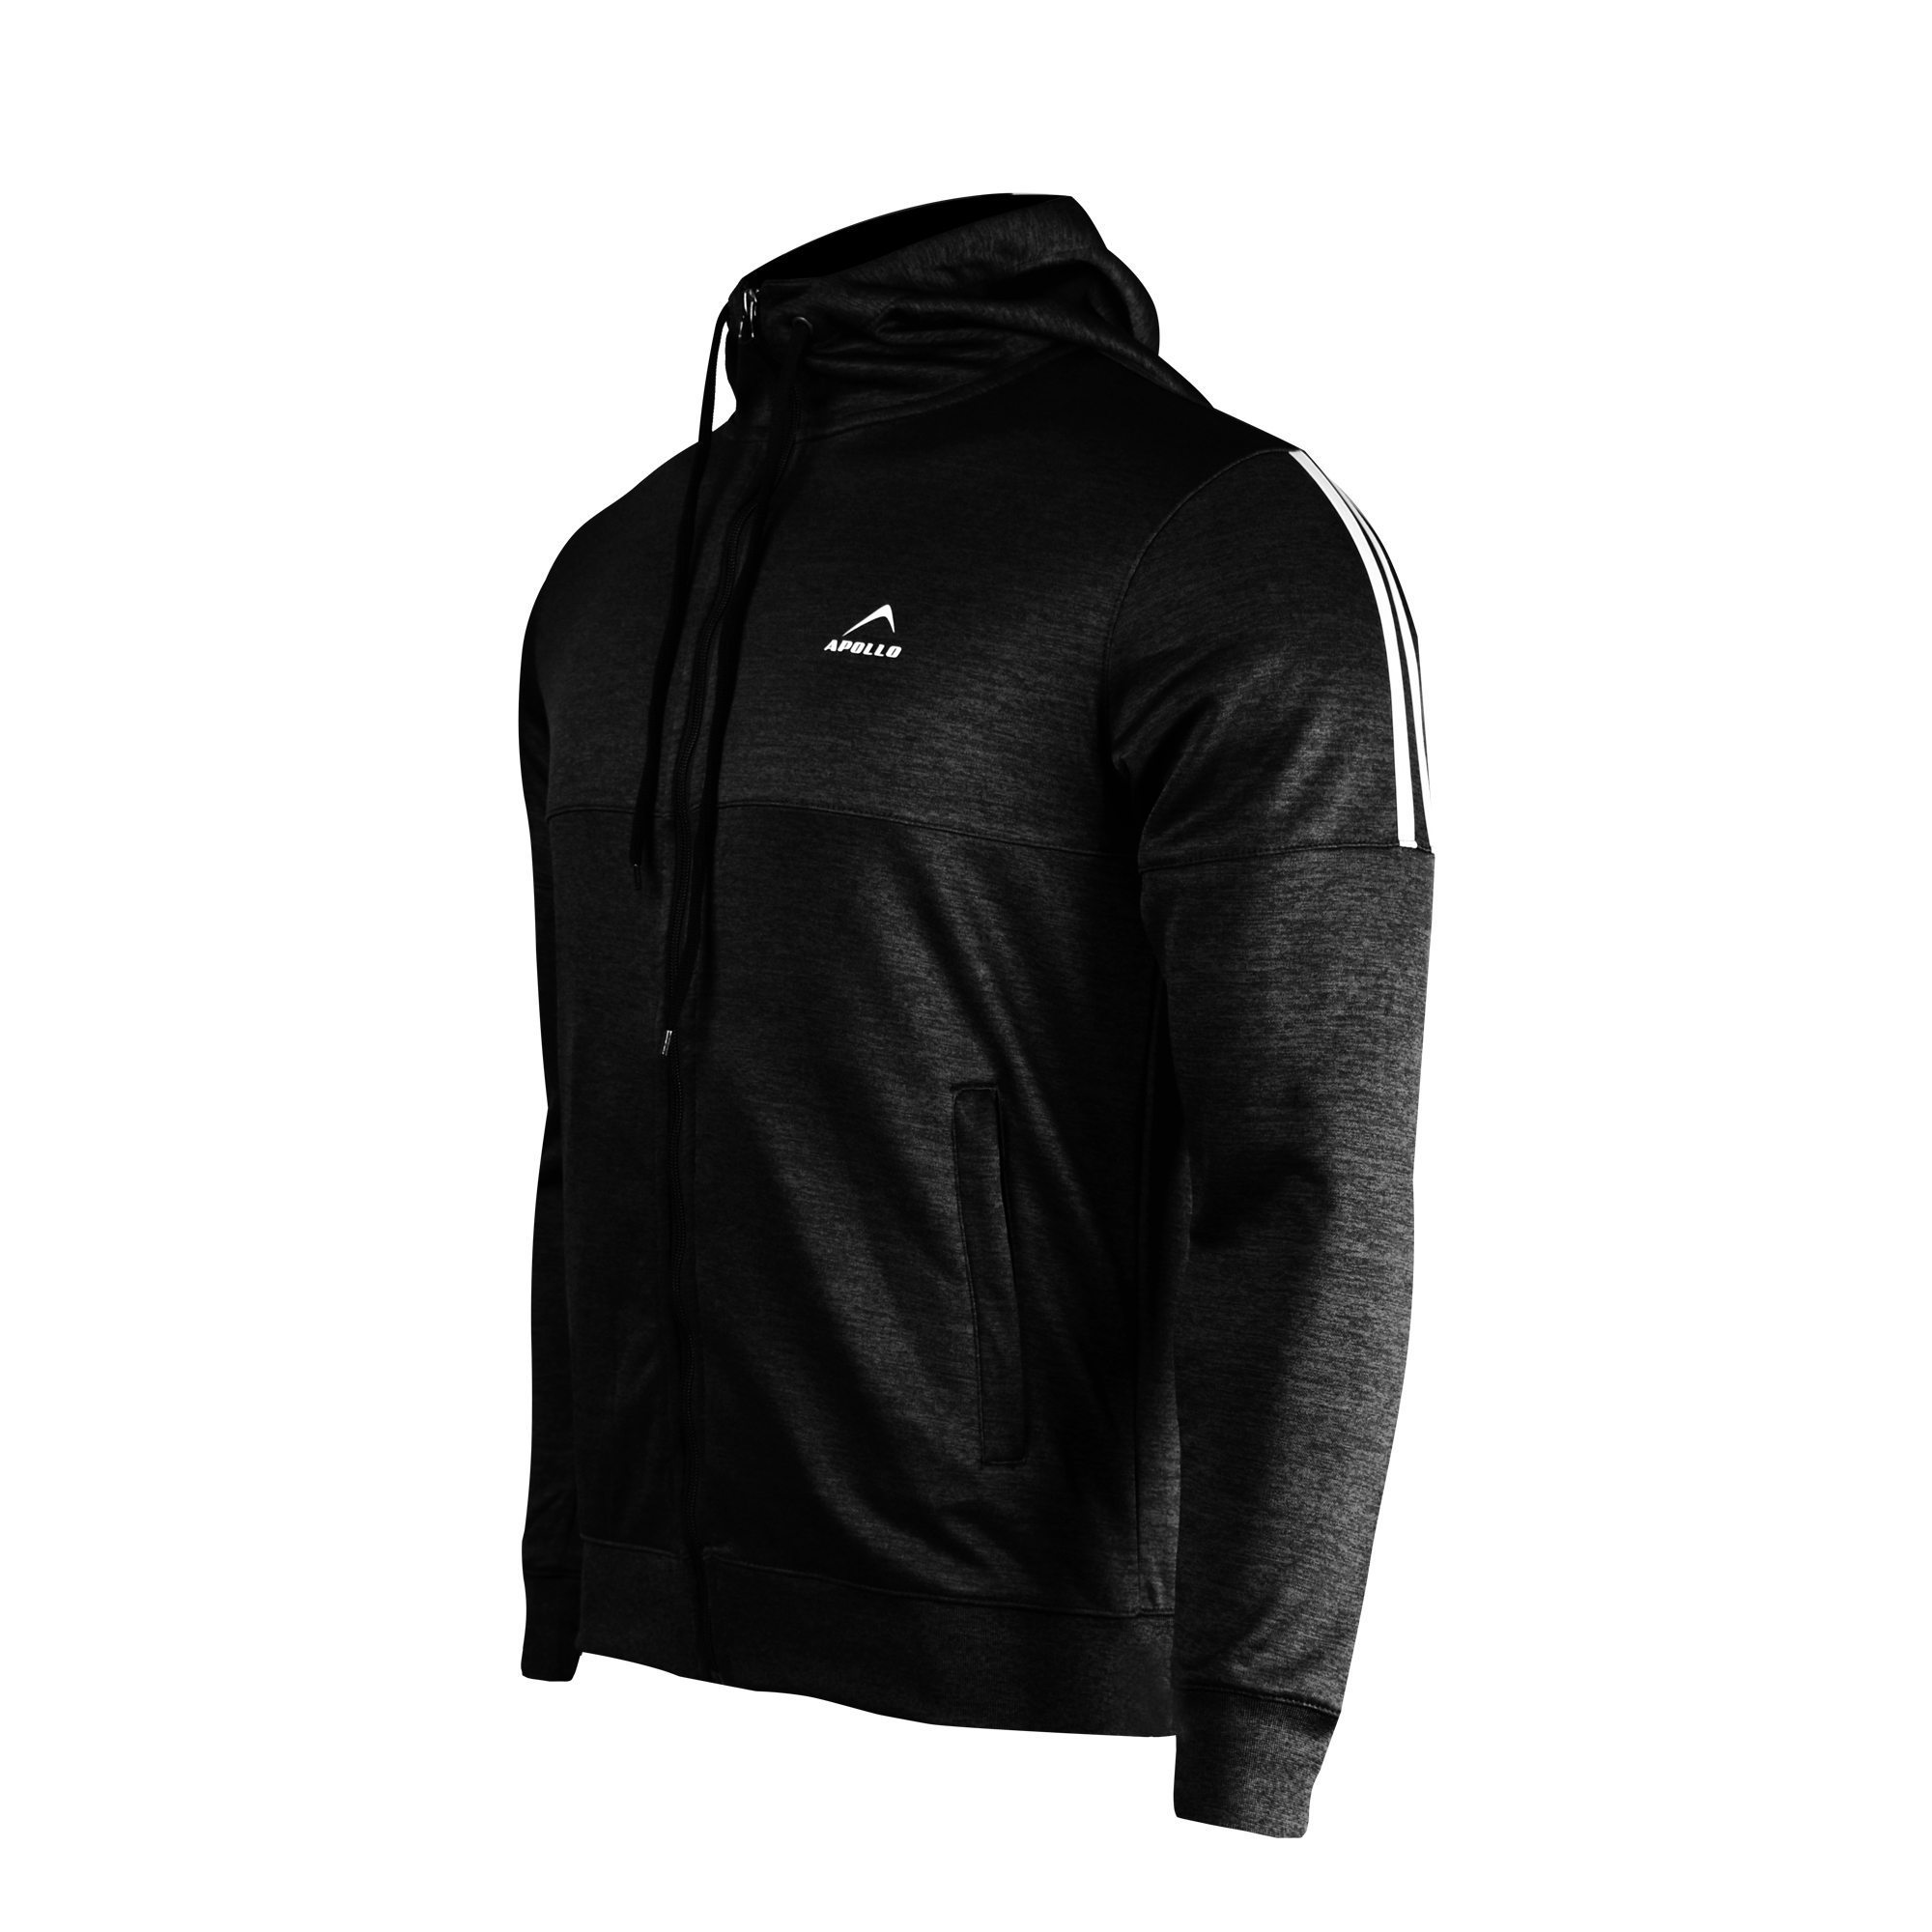 MENS SPORTS CASUAL TRAINING POLYESTER TERRY FLEECE UPPER JACKET HOODIE WINTER 19 APOLLO 93M151 - BLACK